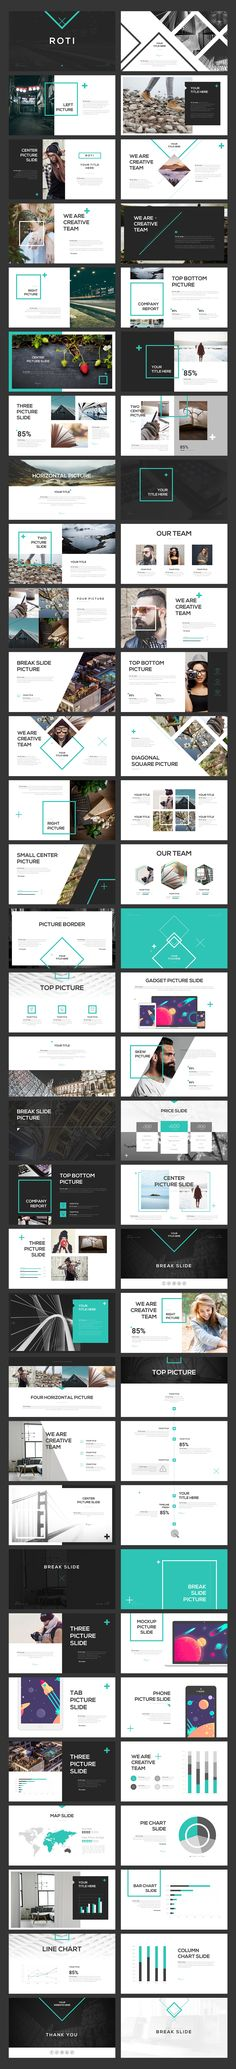 ROTI PowerPoint Template - Presentations - 6